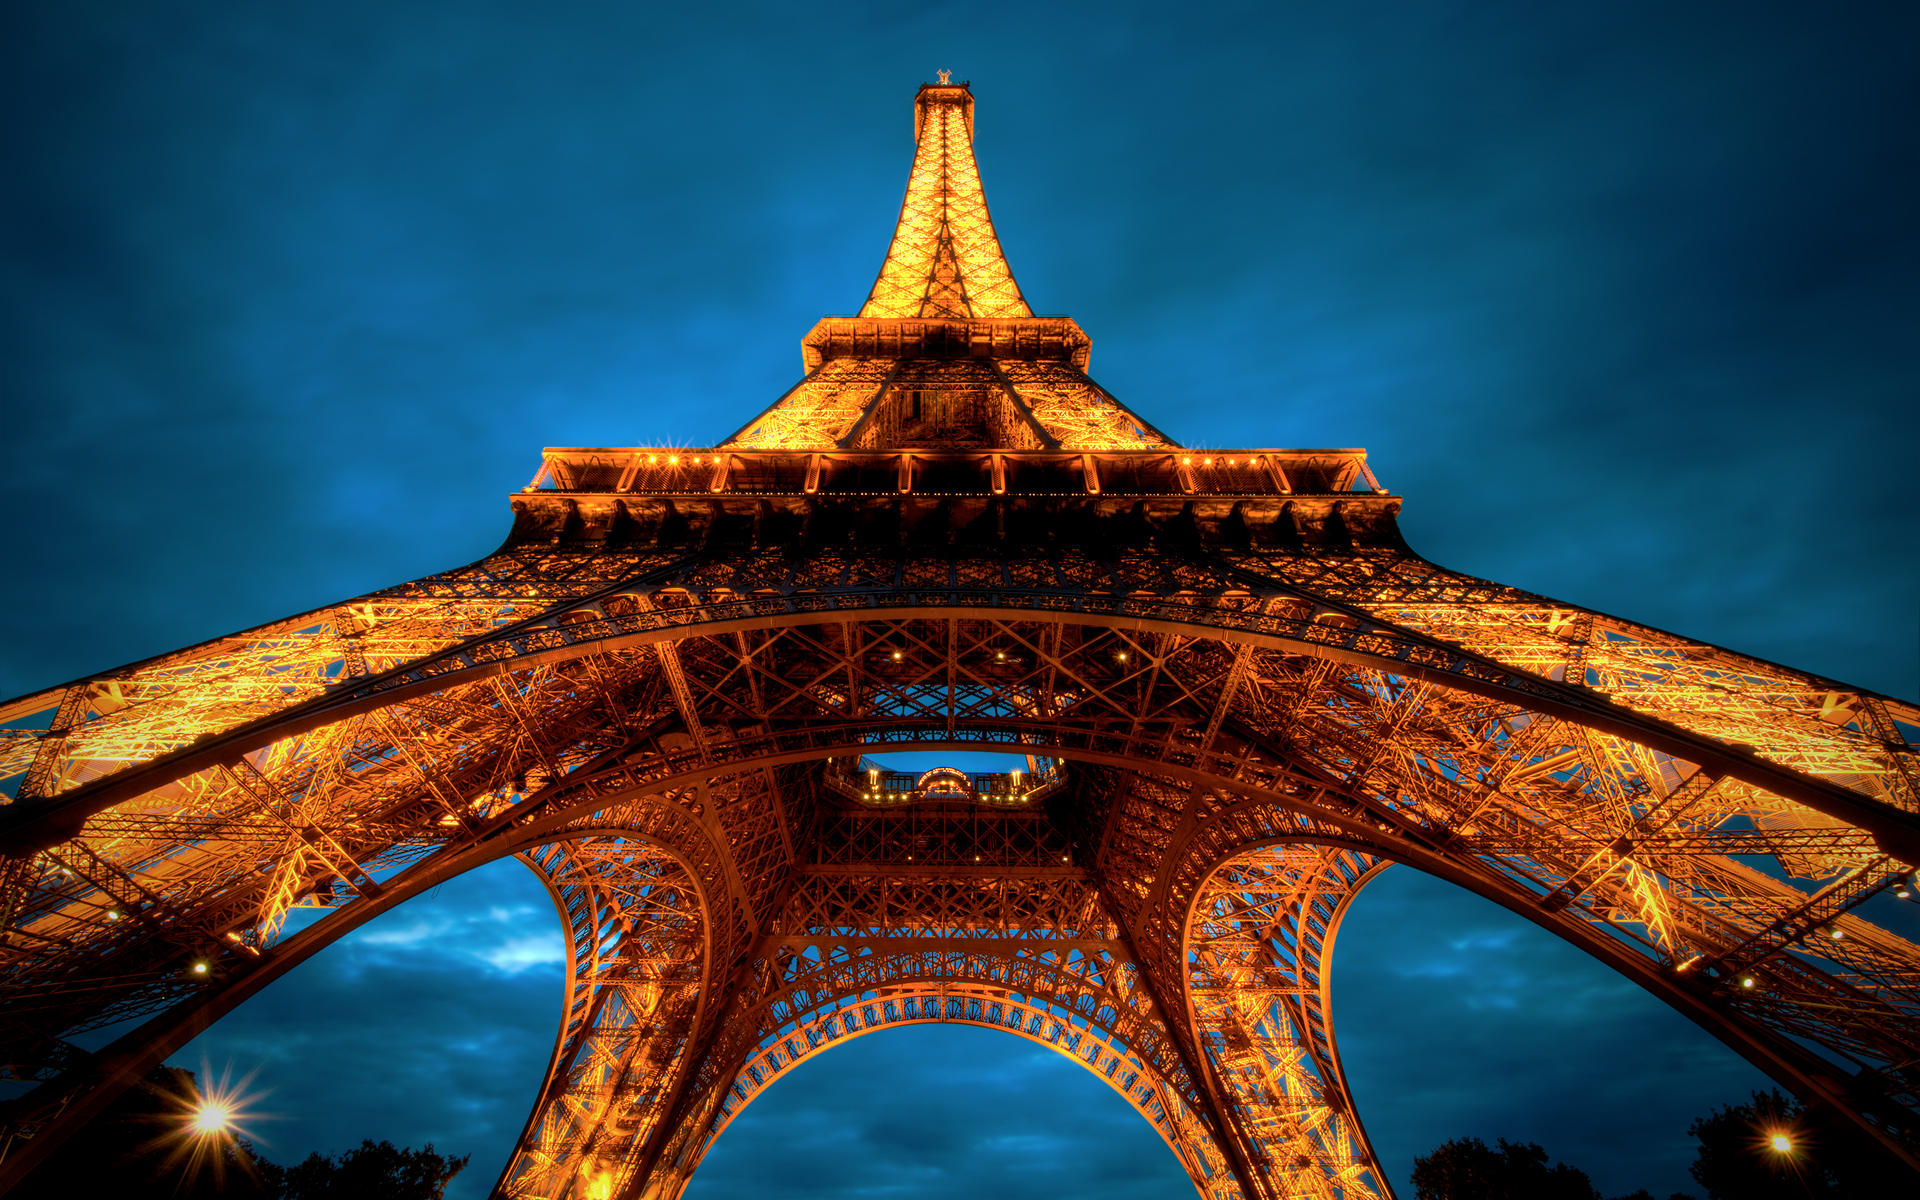 Tour Eiffel - Paris (France)